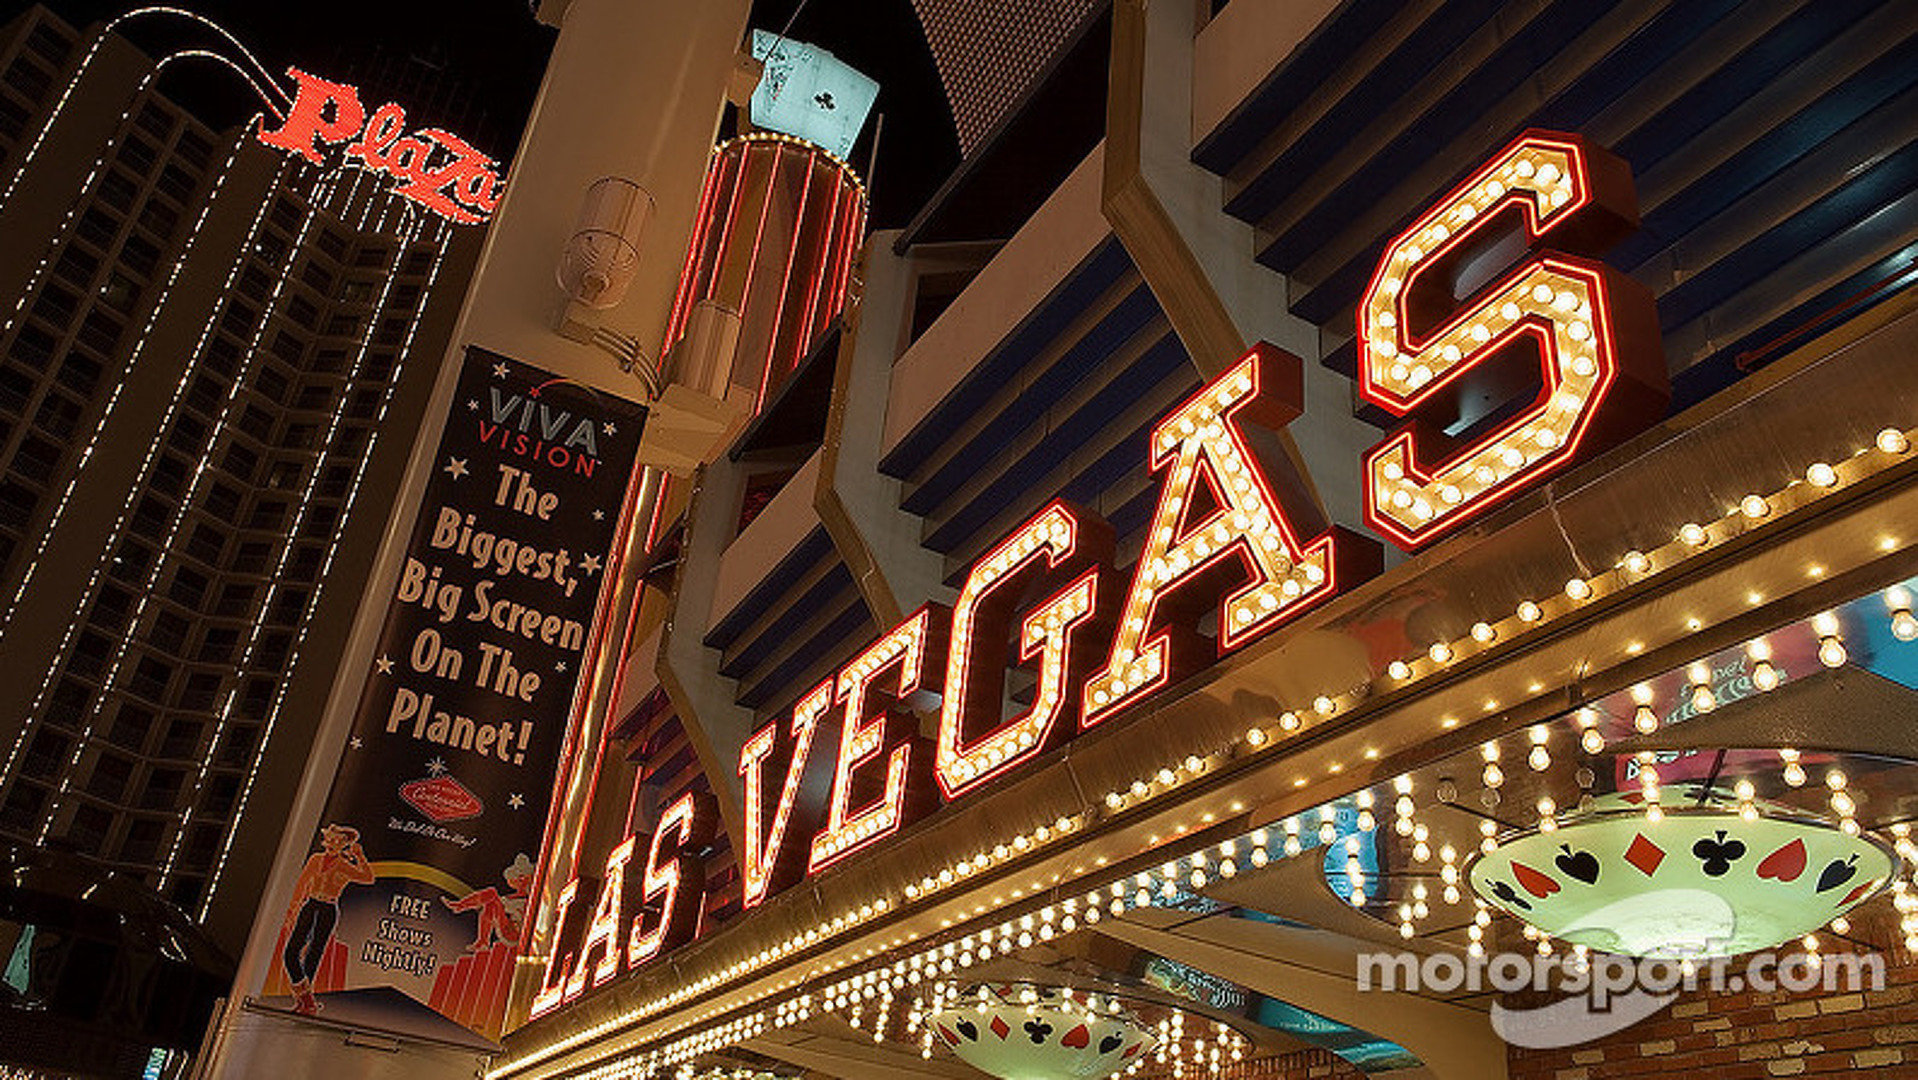 Las Vegas gets boost in F1 bid